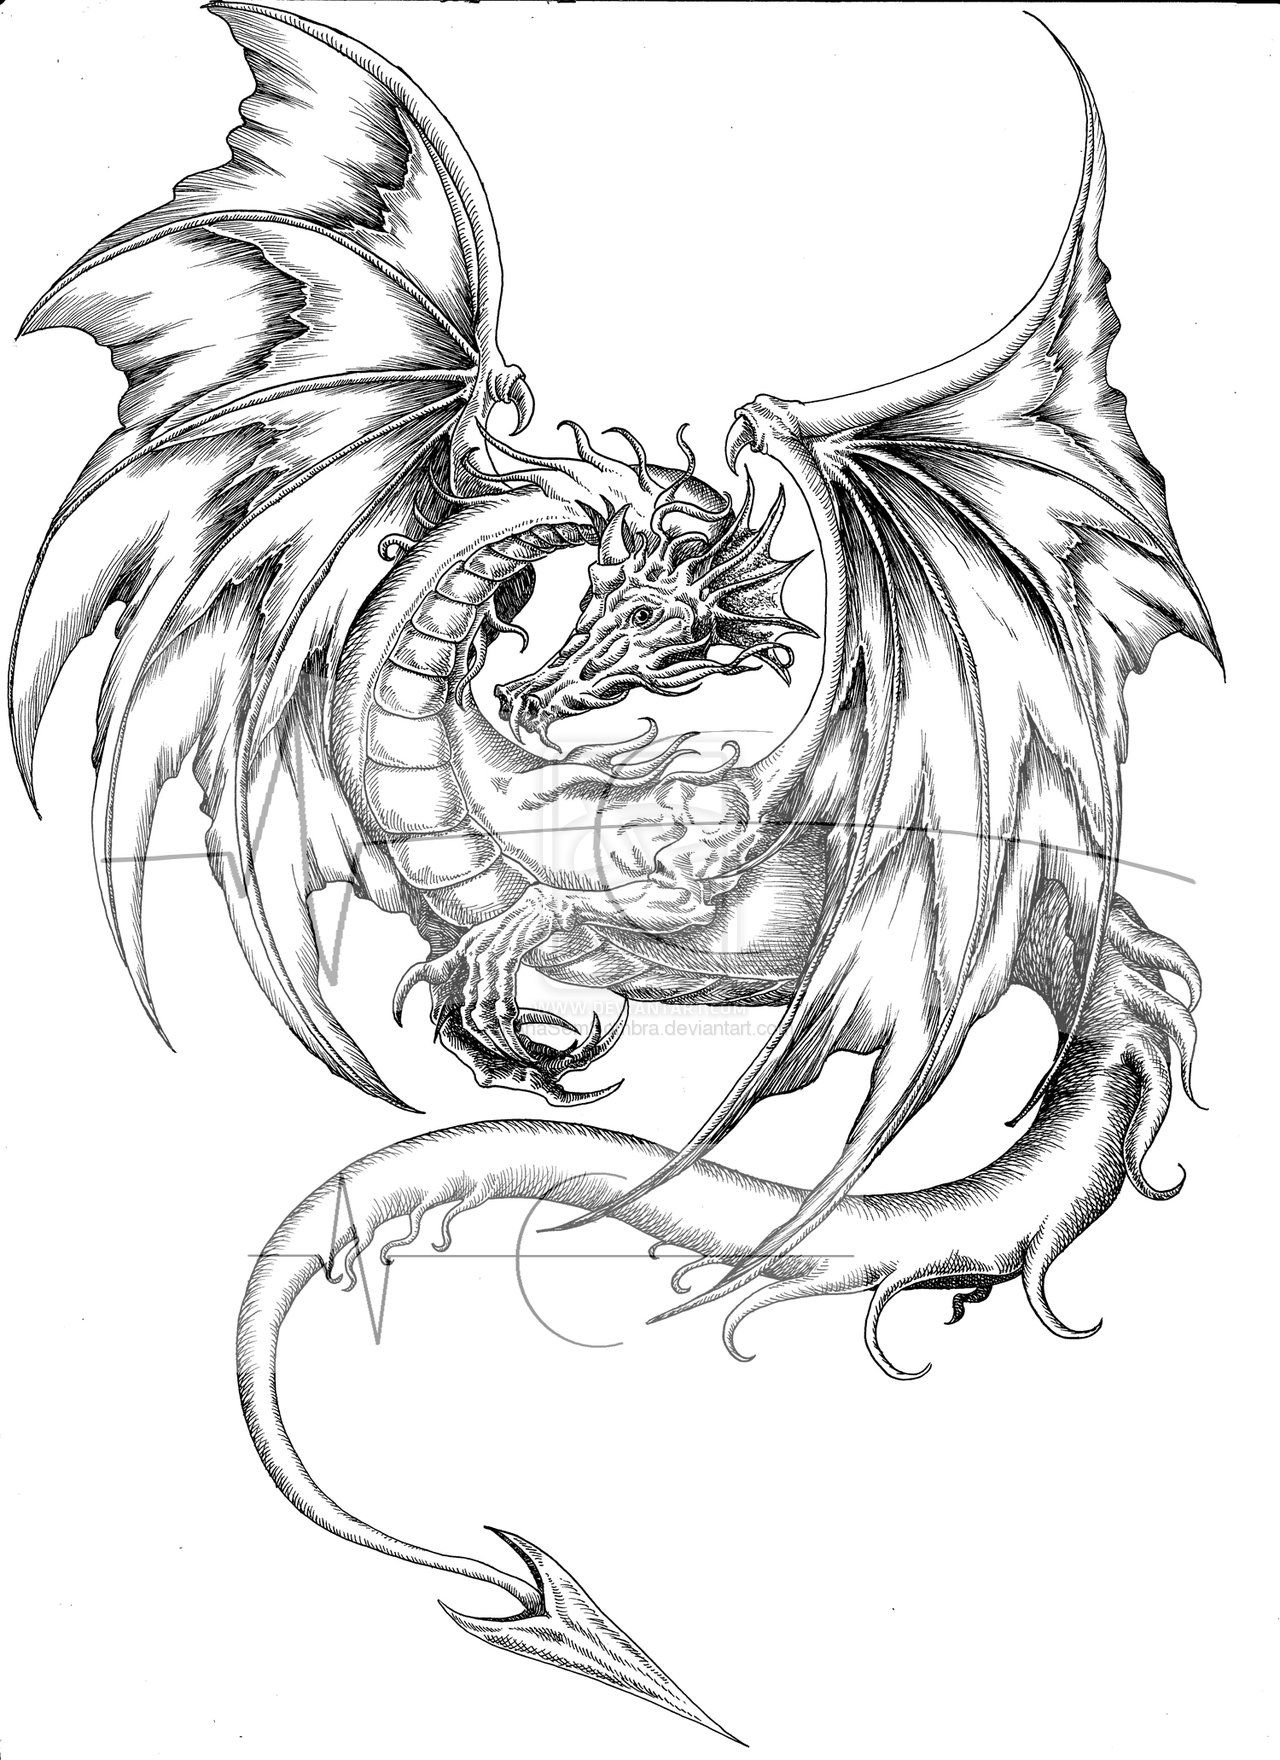 coloring page dragon tattoo designs dragon color pages pinterest tatto dragon tattoo. Black Bedroom Furniture Sets. Home Design Ideas